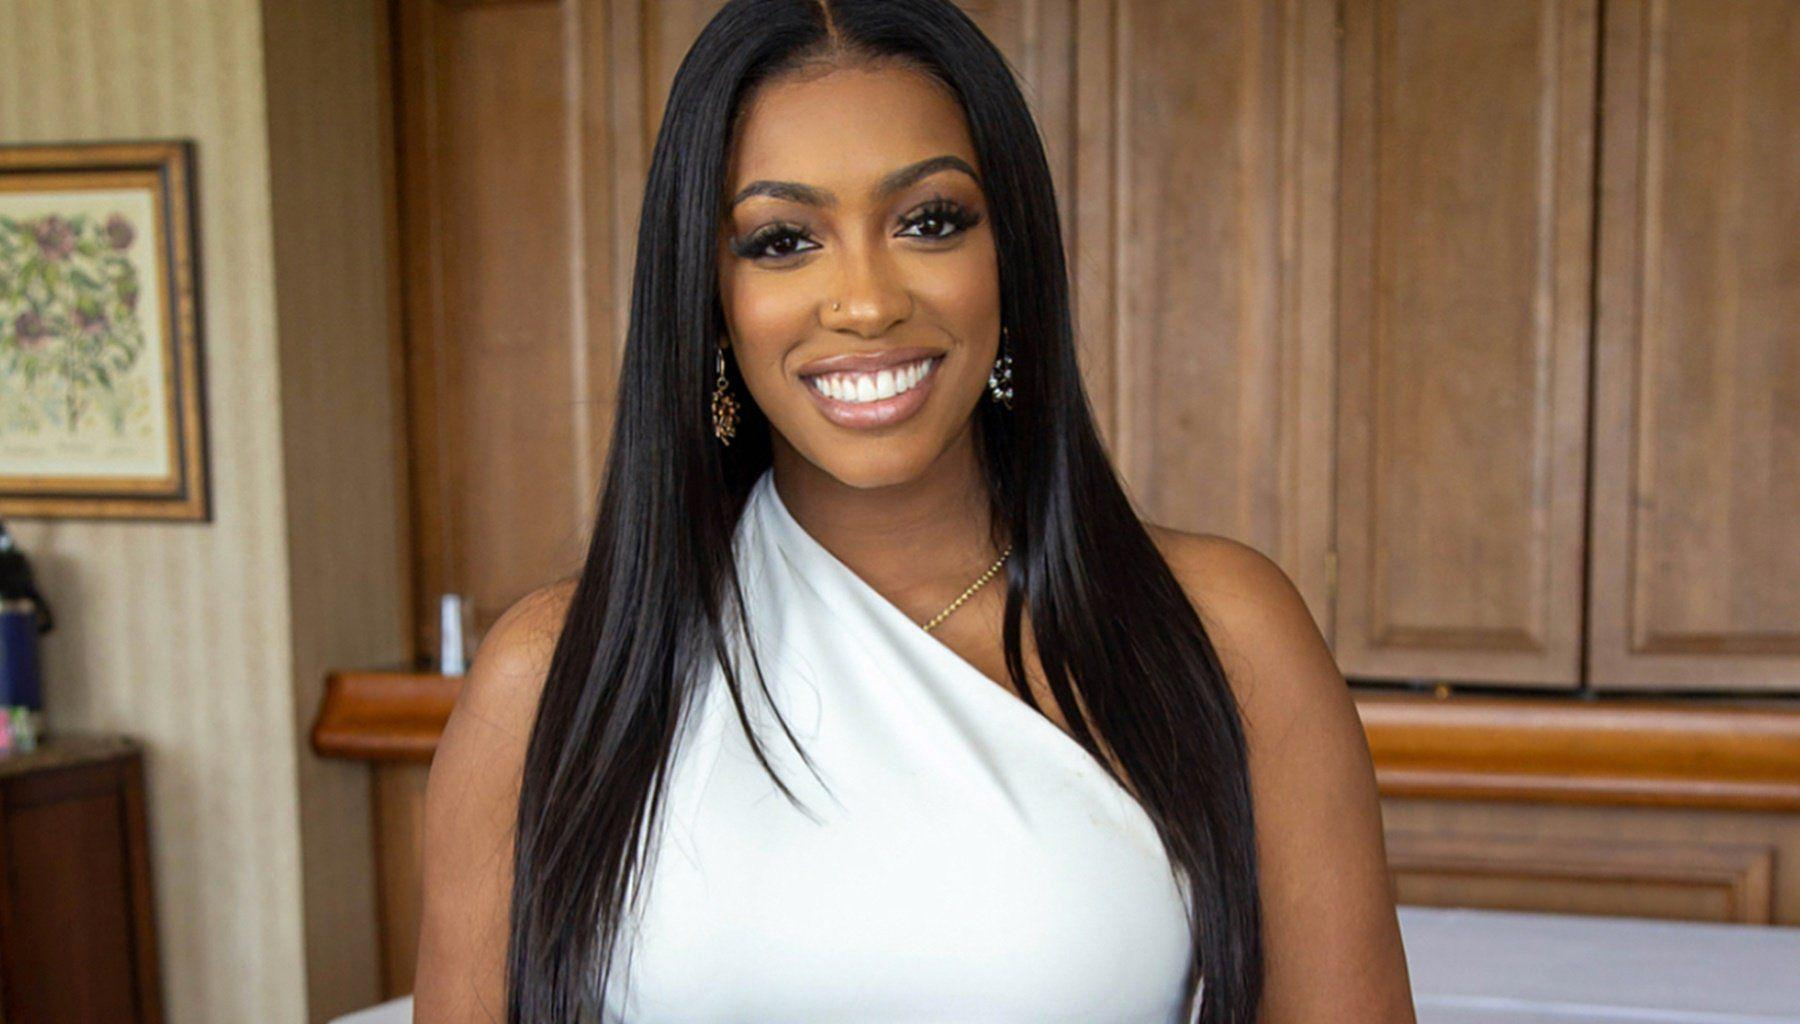 Porsha Williams Looks Gorgeous In Her Babymoon Professional Photo Shoot In The Bahamas - Fans Love Her Pregnant Belly